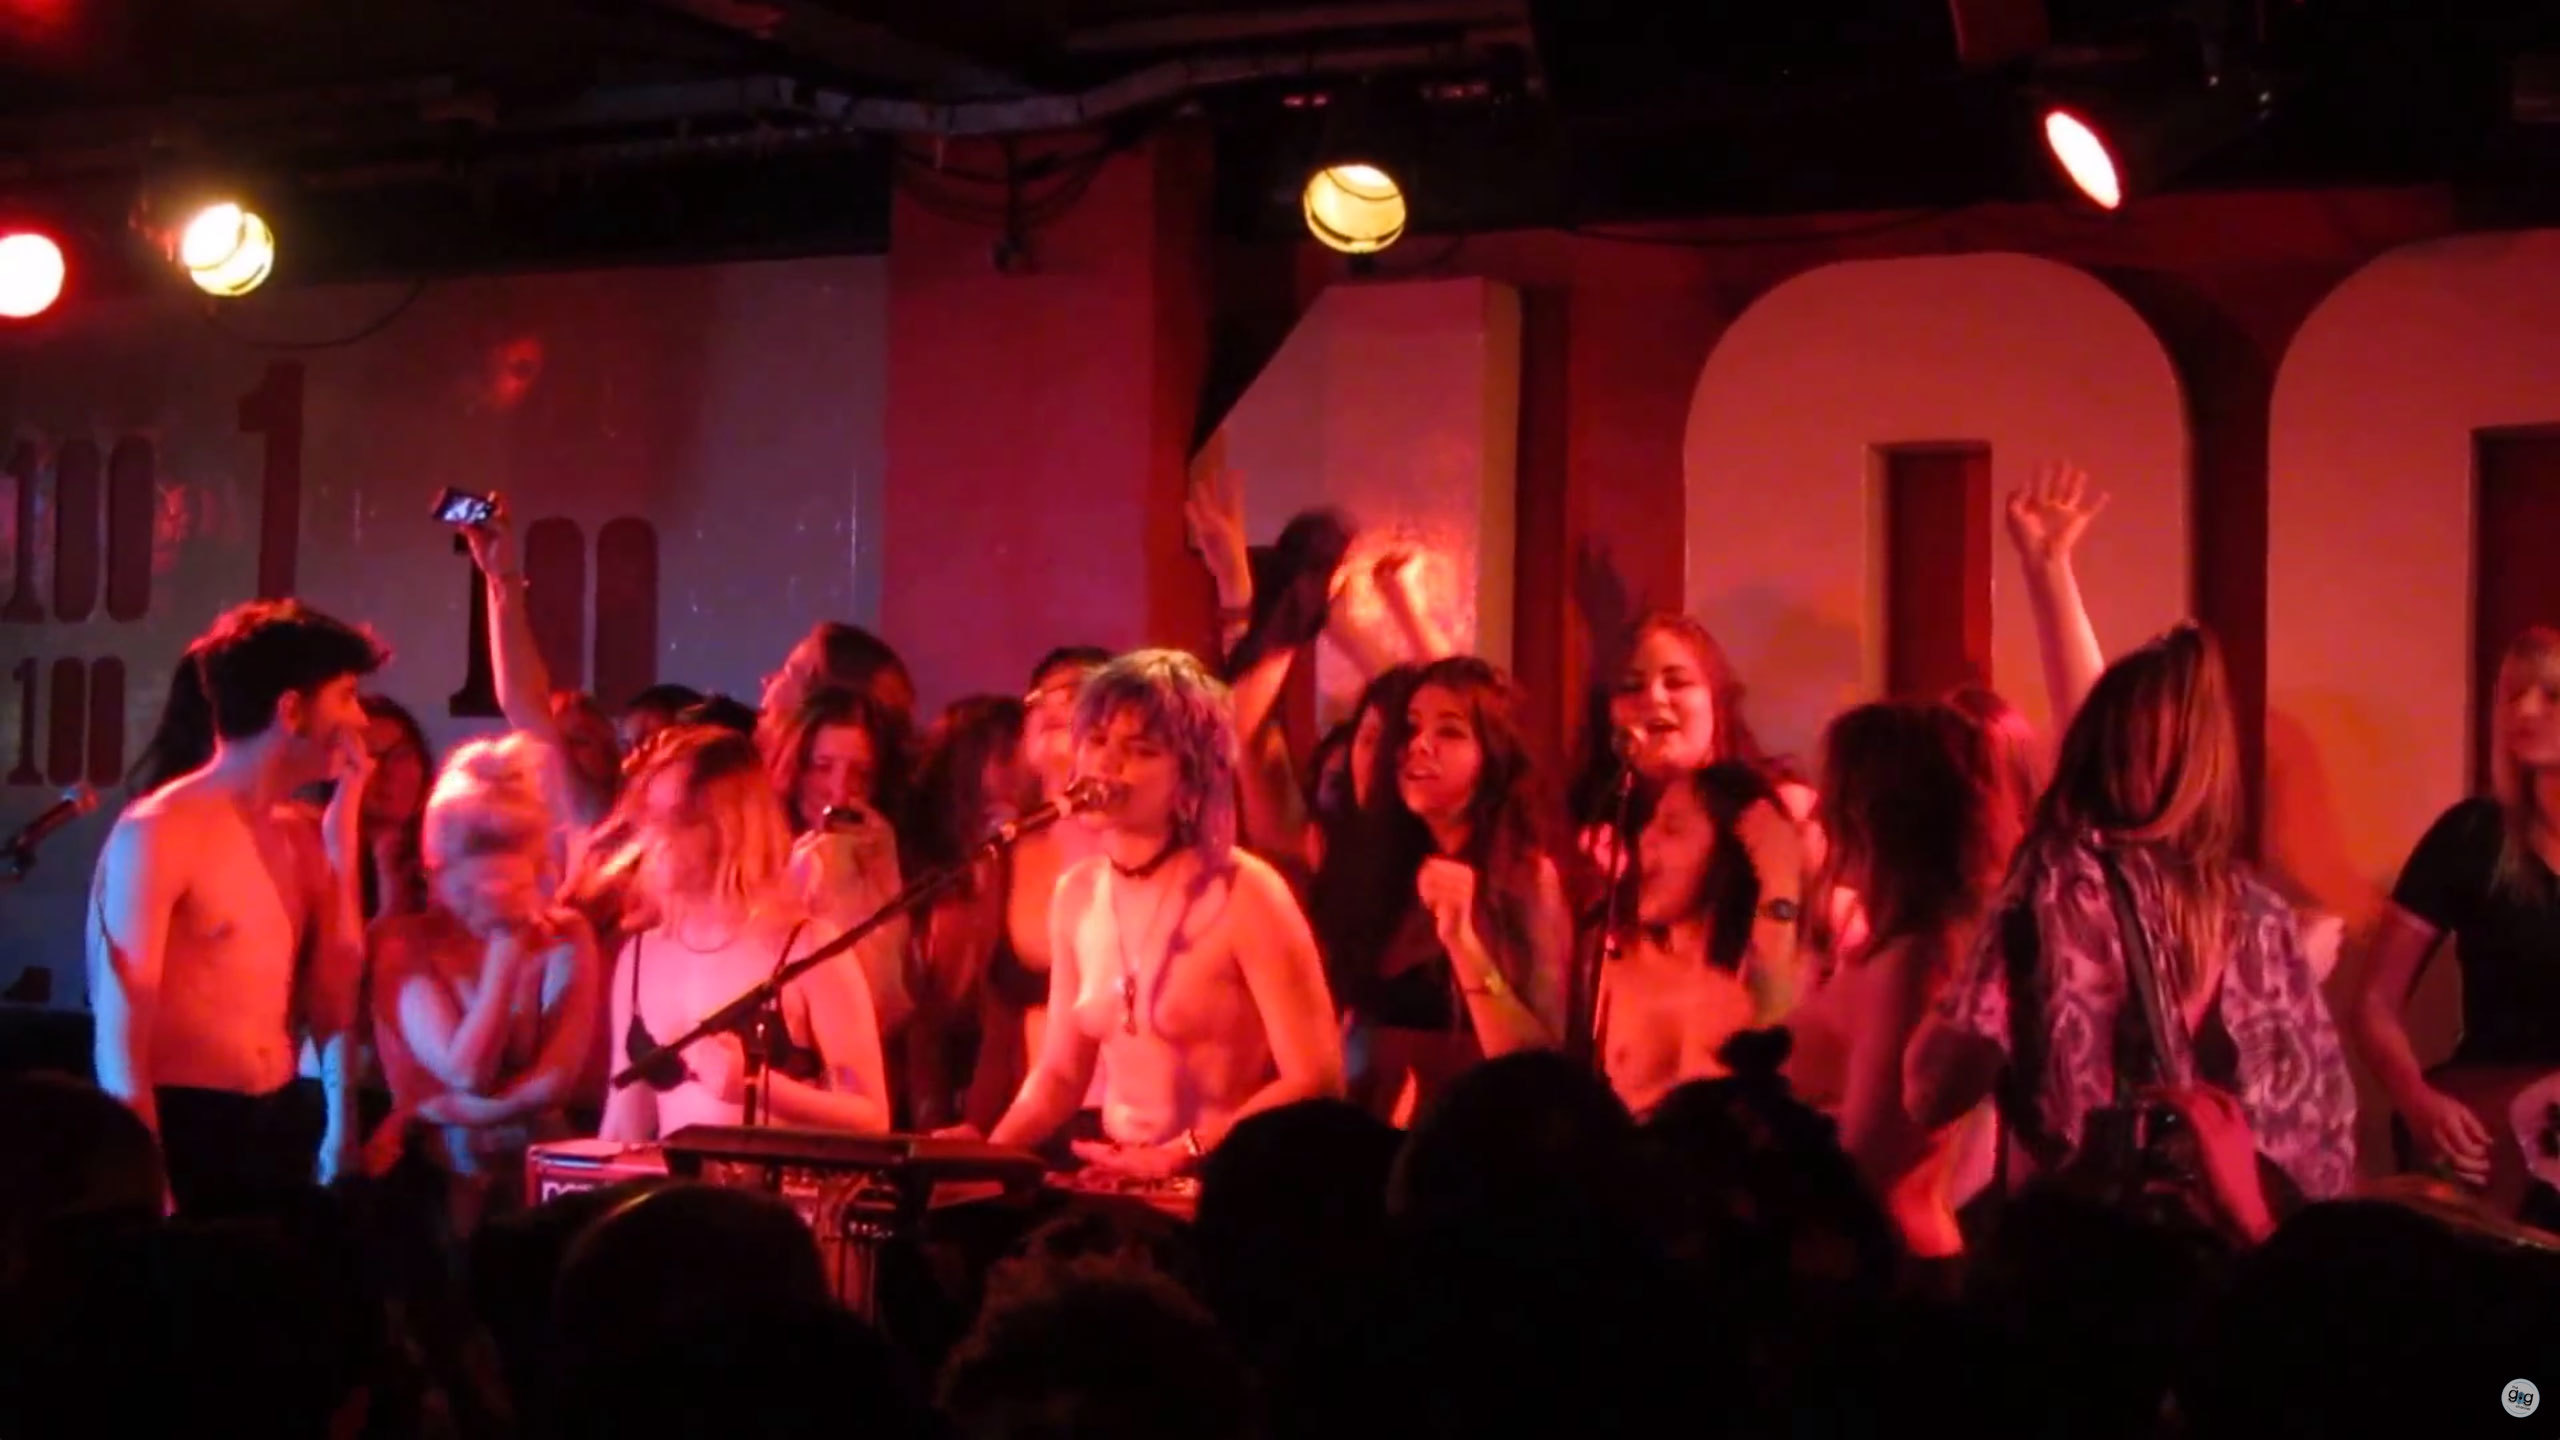 Soko And Fans Freethenipple At Sold Out London Show Read I D